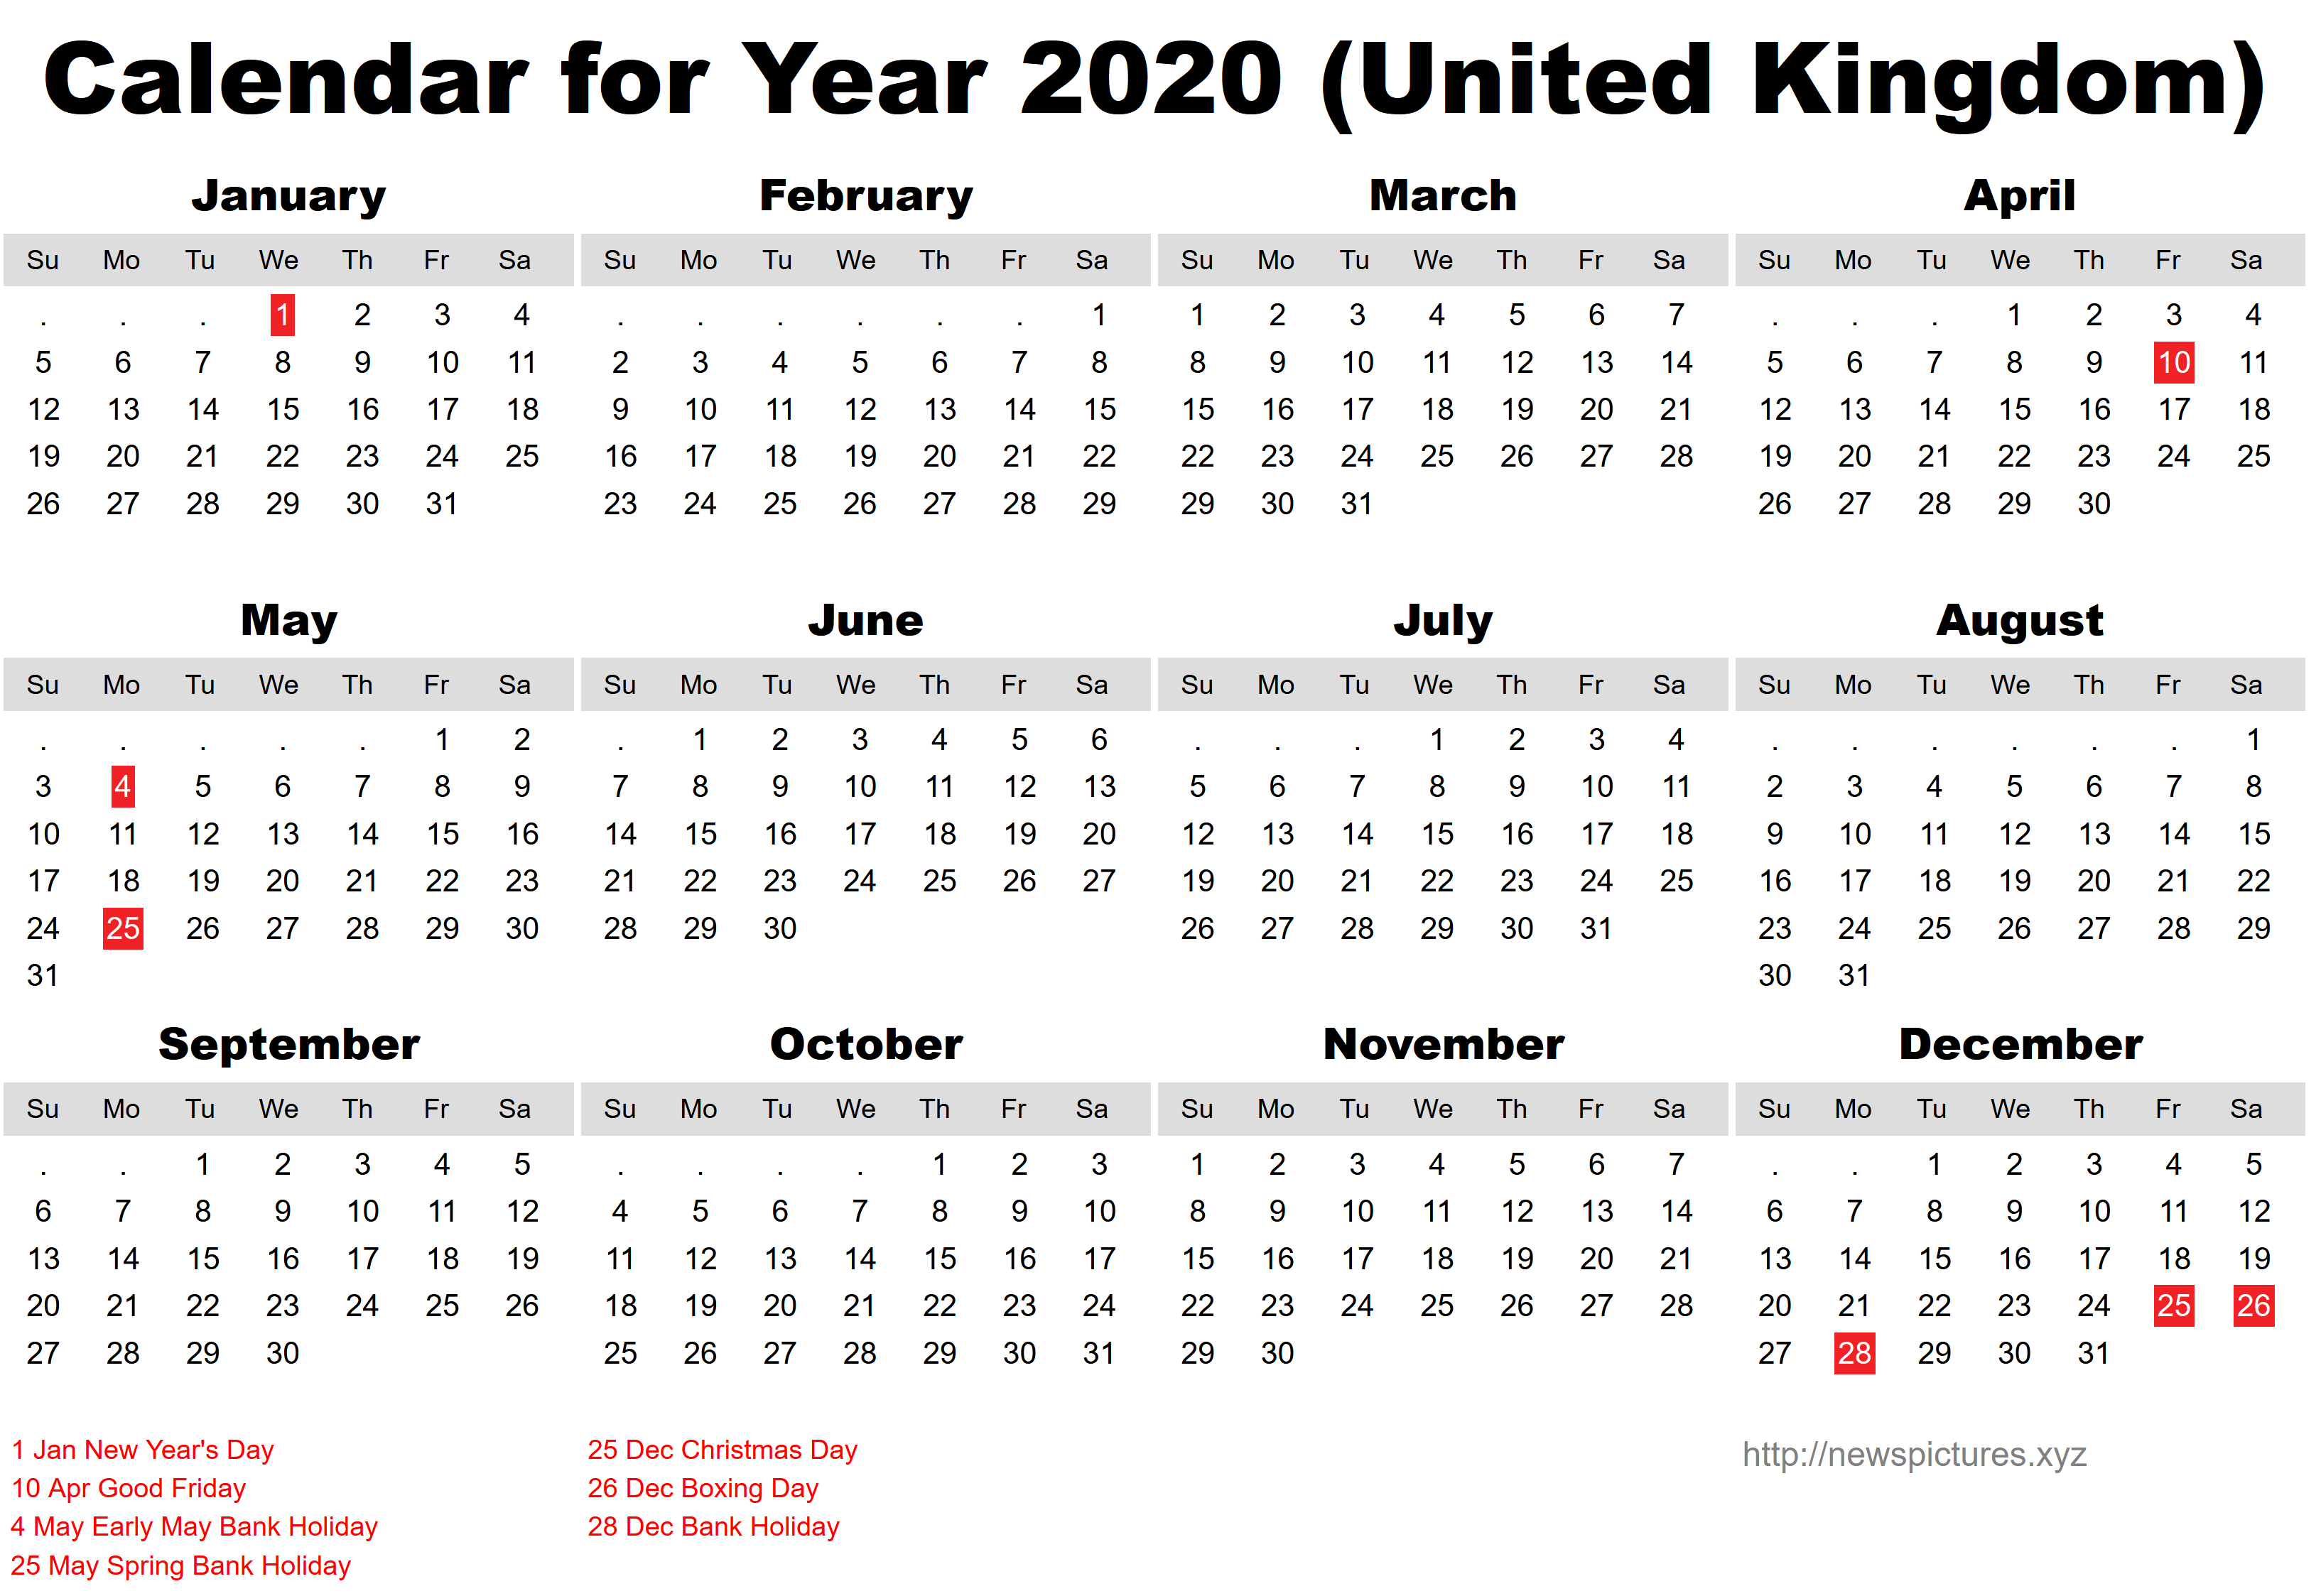 Free Printable Sri Lanka Calendar 2020 with Holidays in